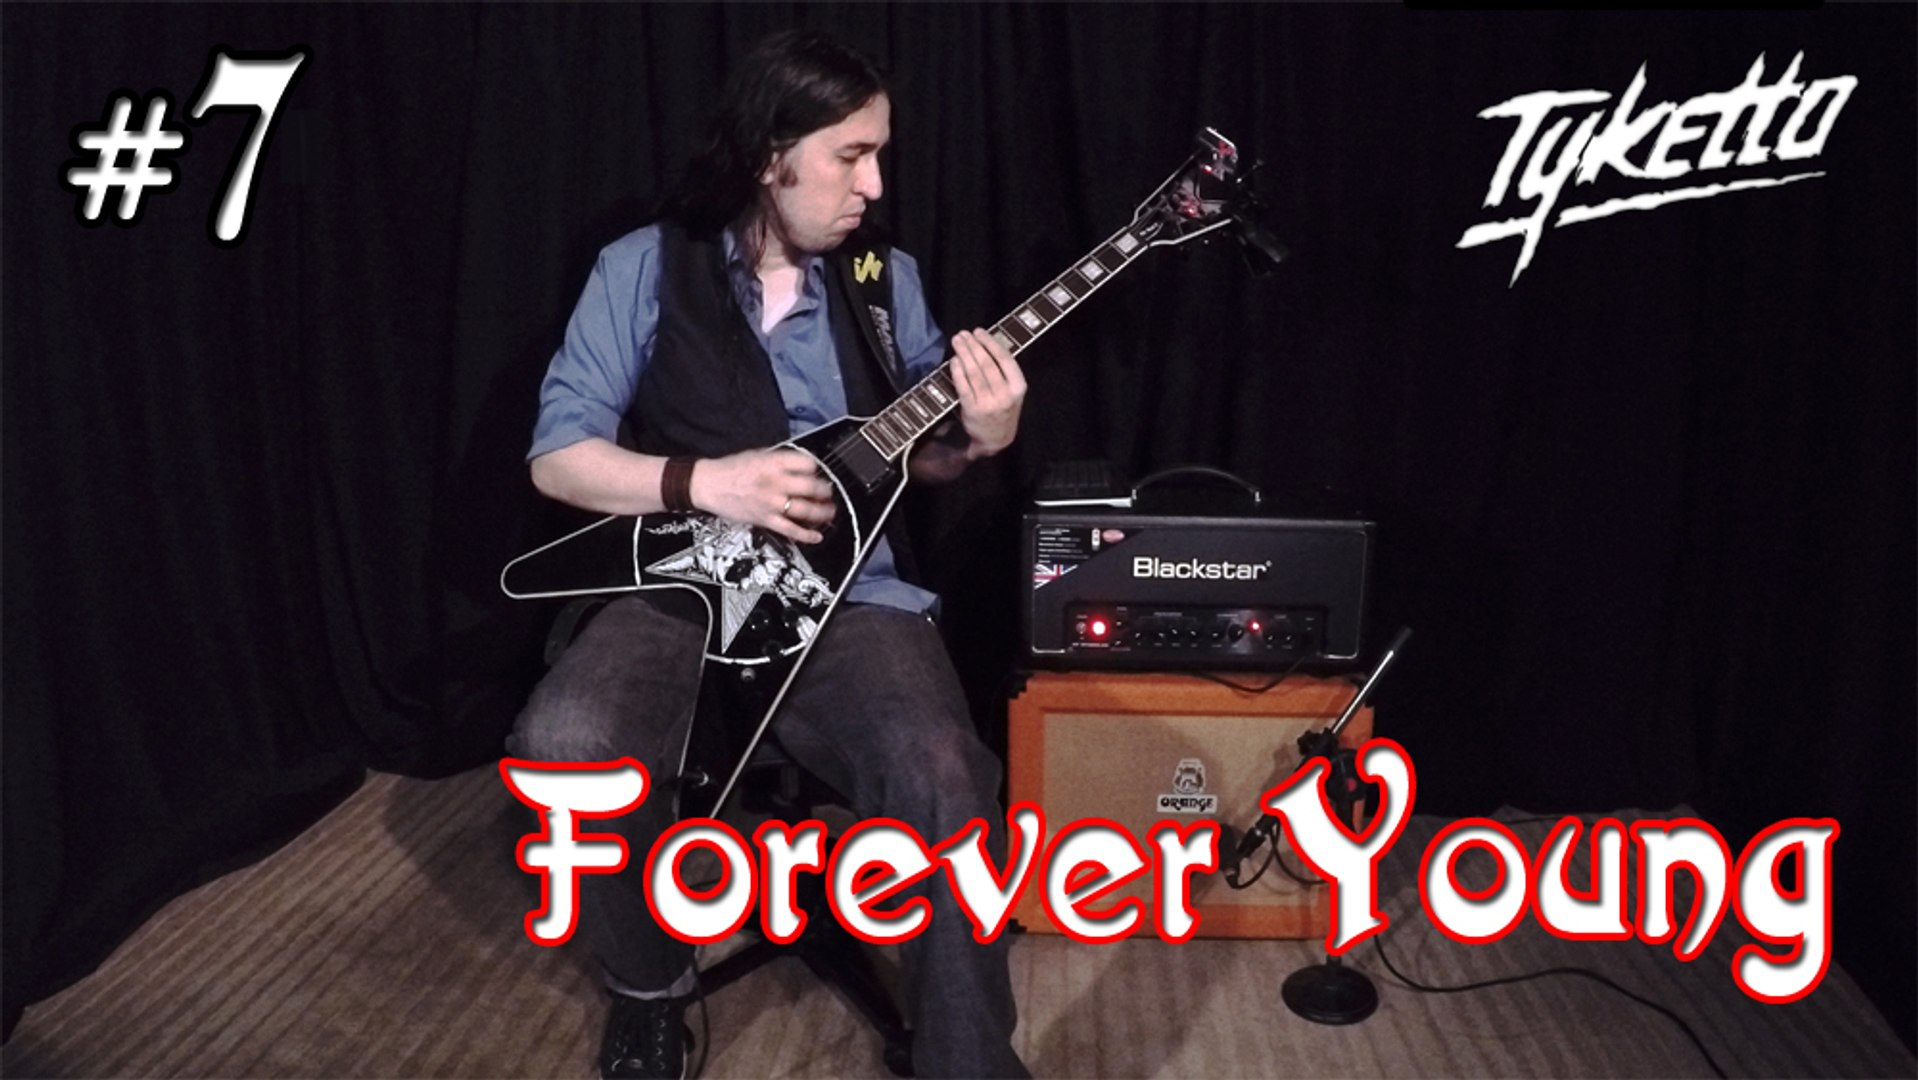 Tyketto - Forever Young (cover) - by: Paulo Alves